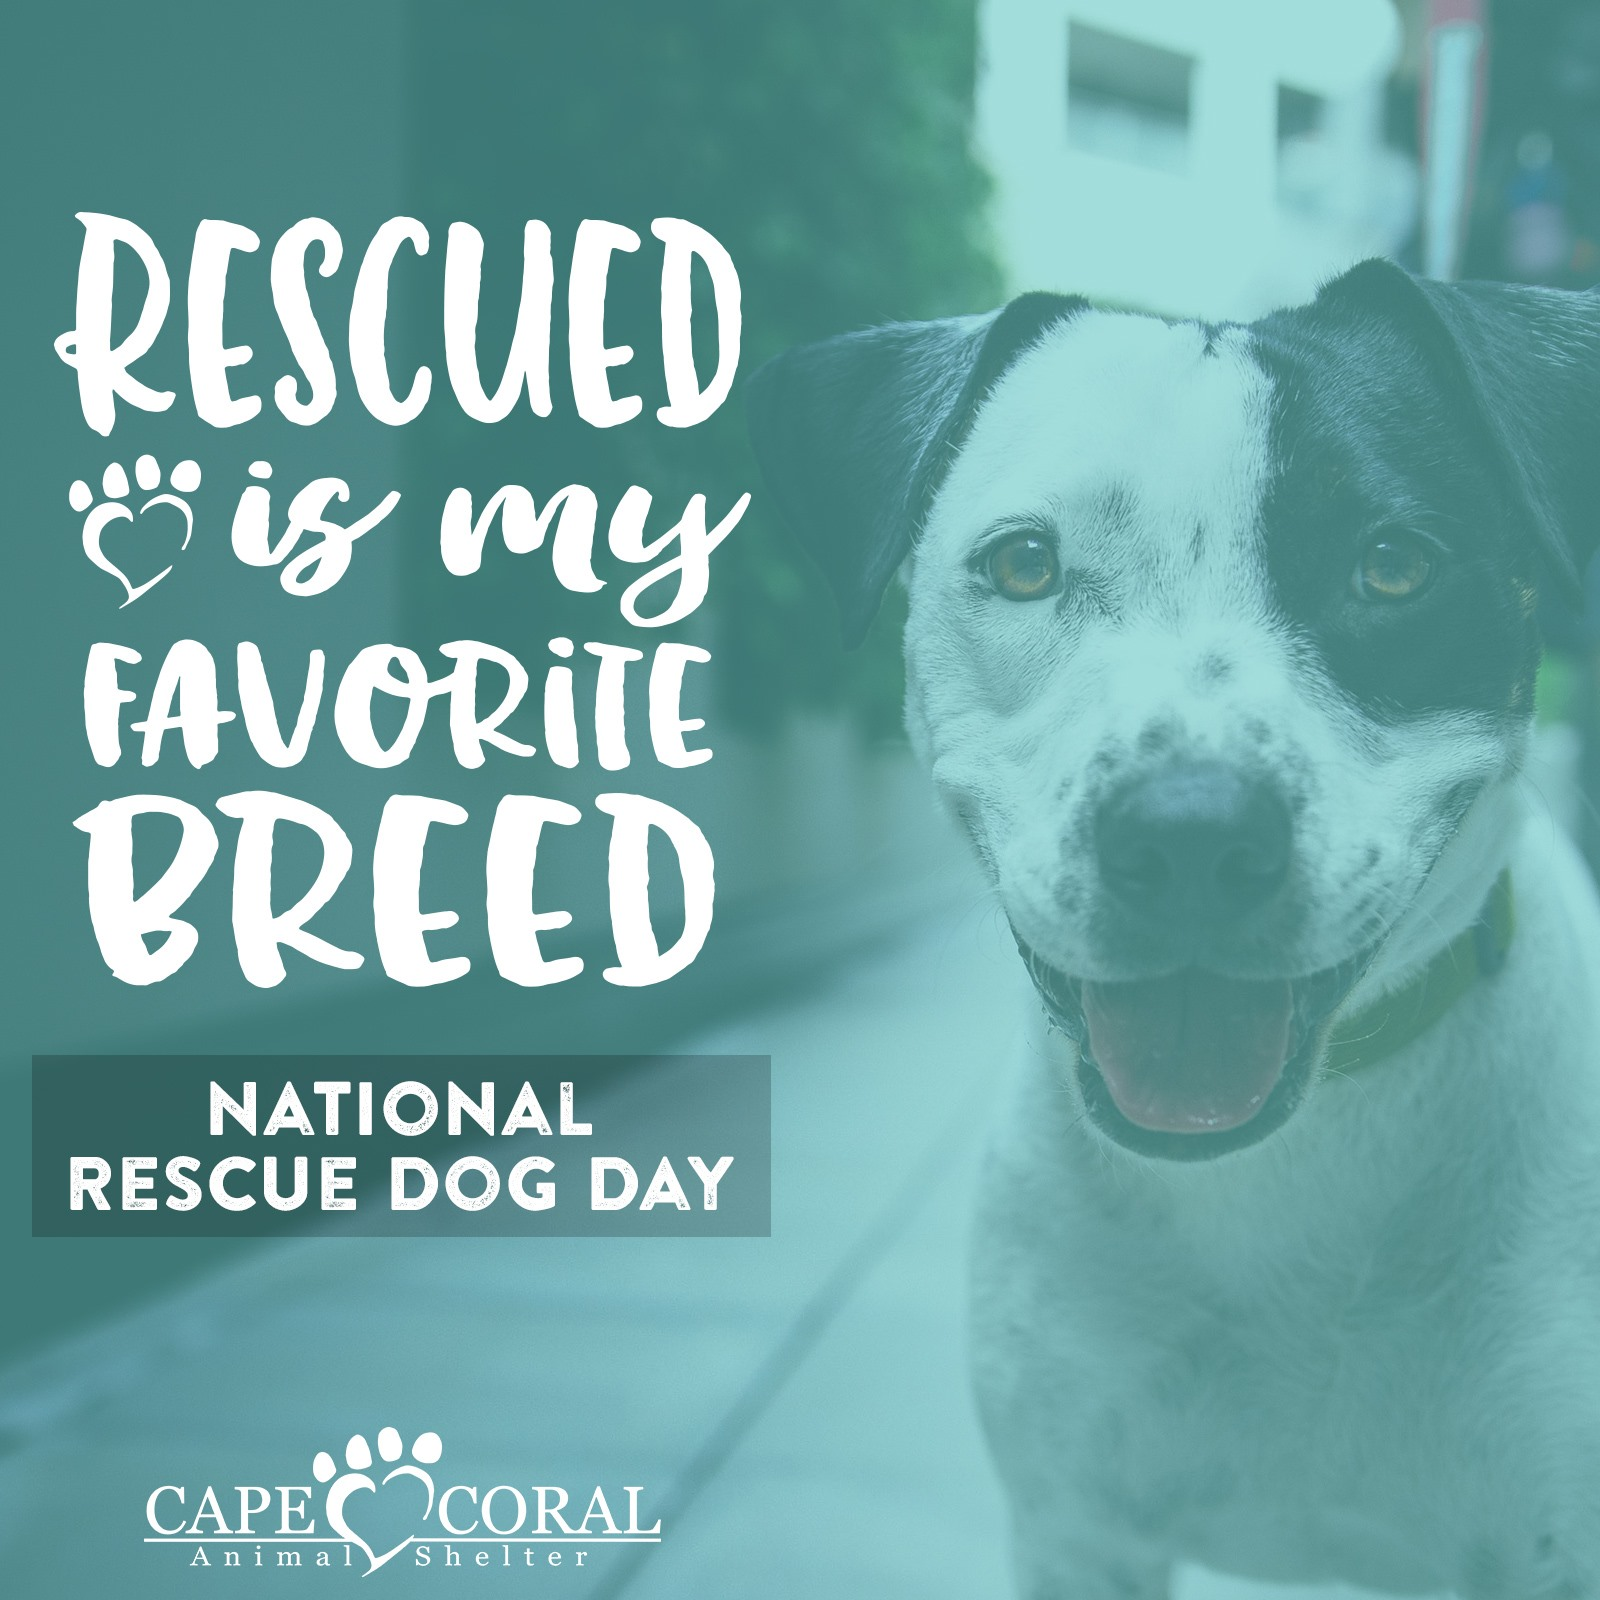 National Rescue Dog Day